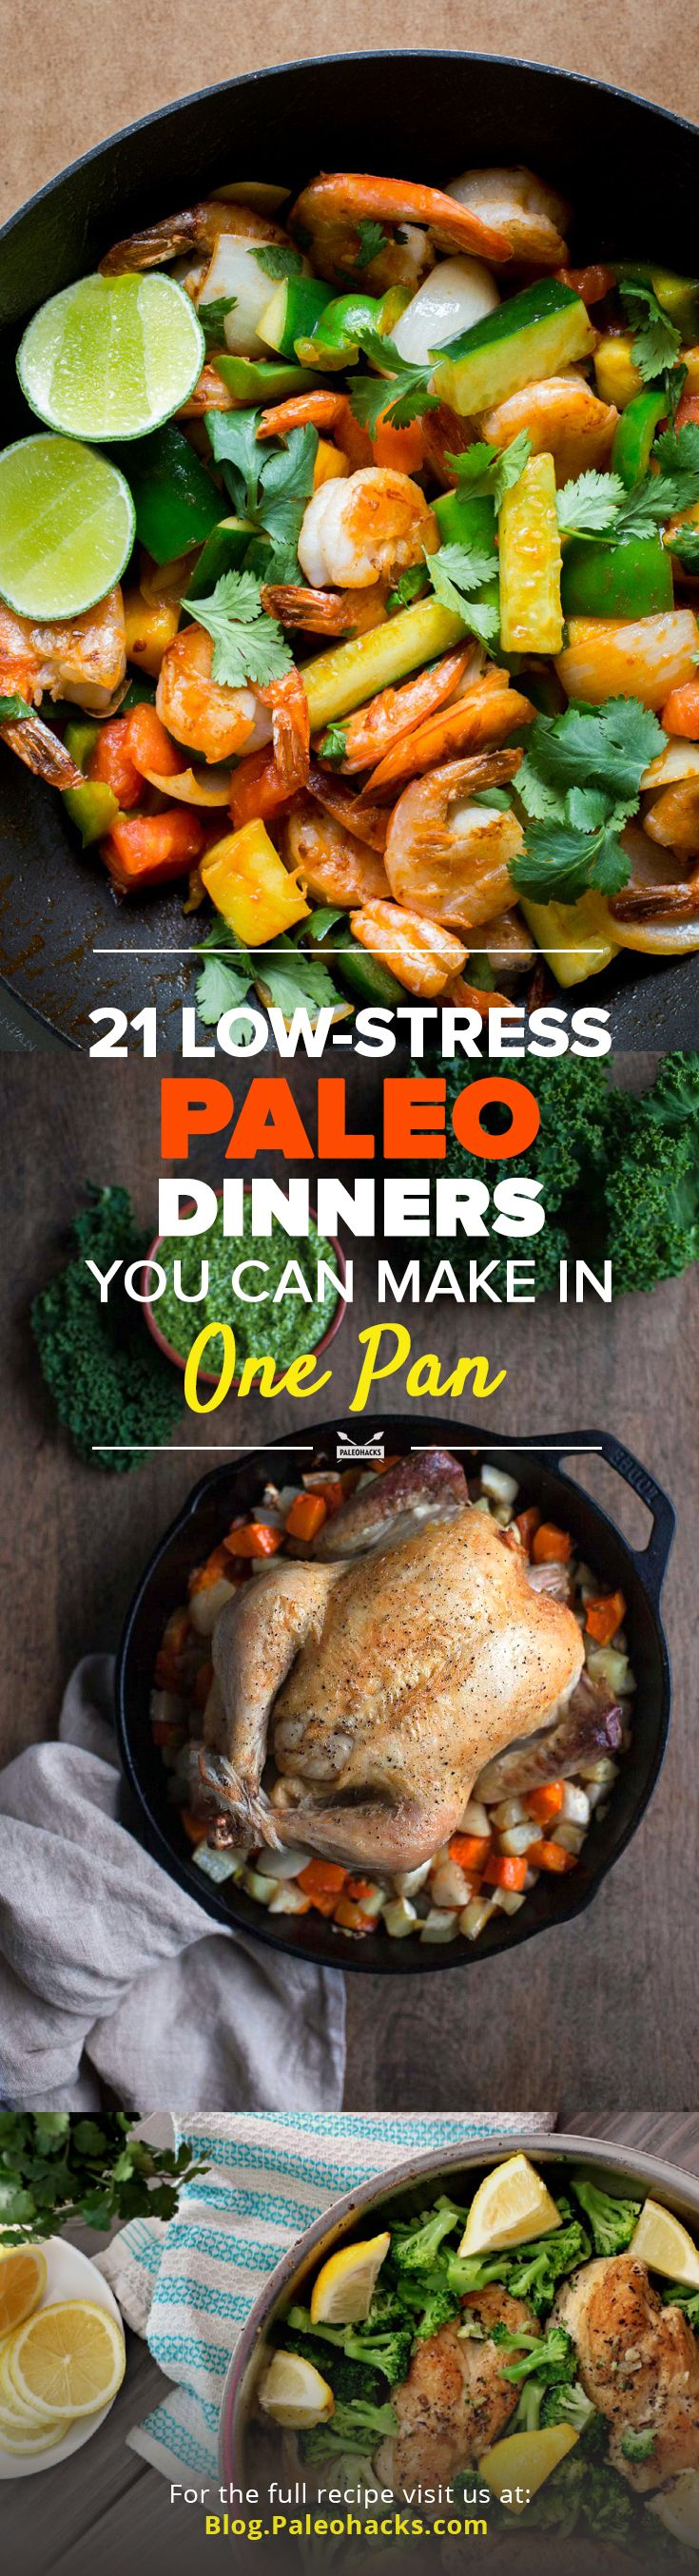 21 Low-Stress Paleo Dinners You Can Make in One Pan   #justeatrealfood #paleohacks